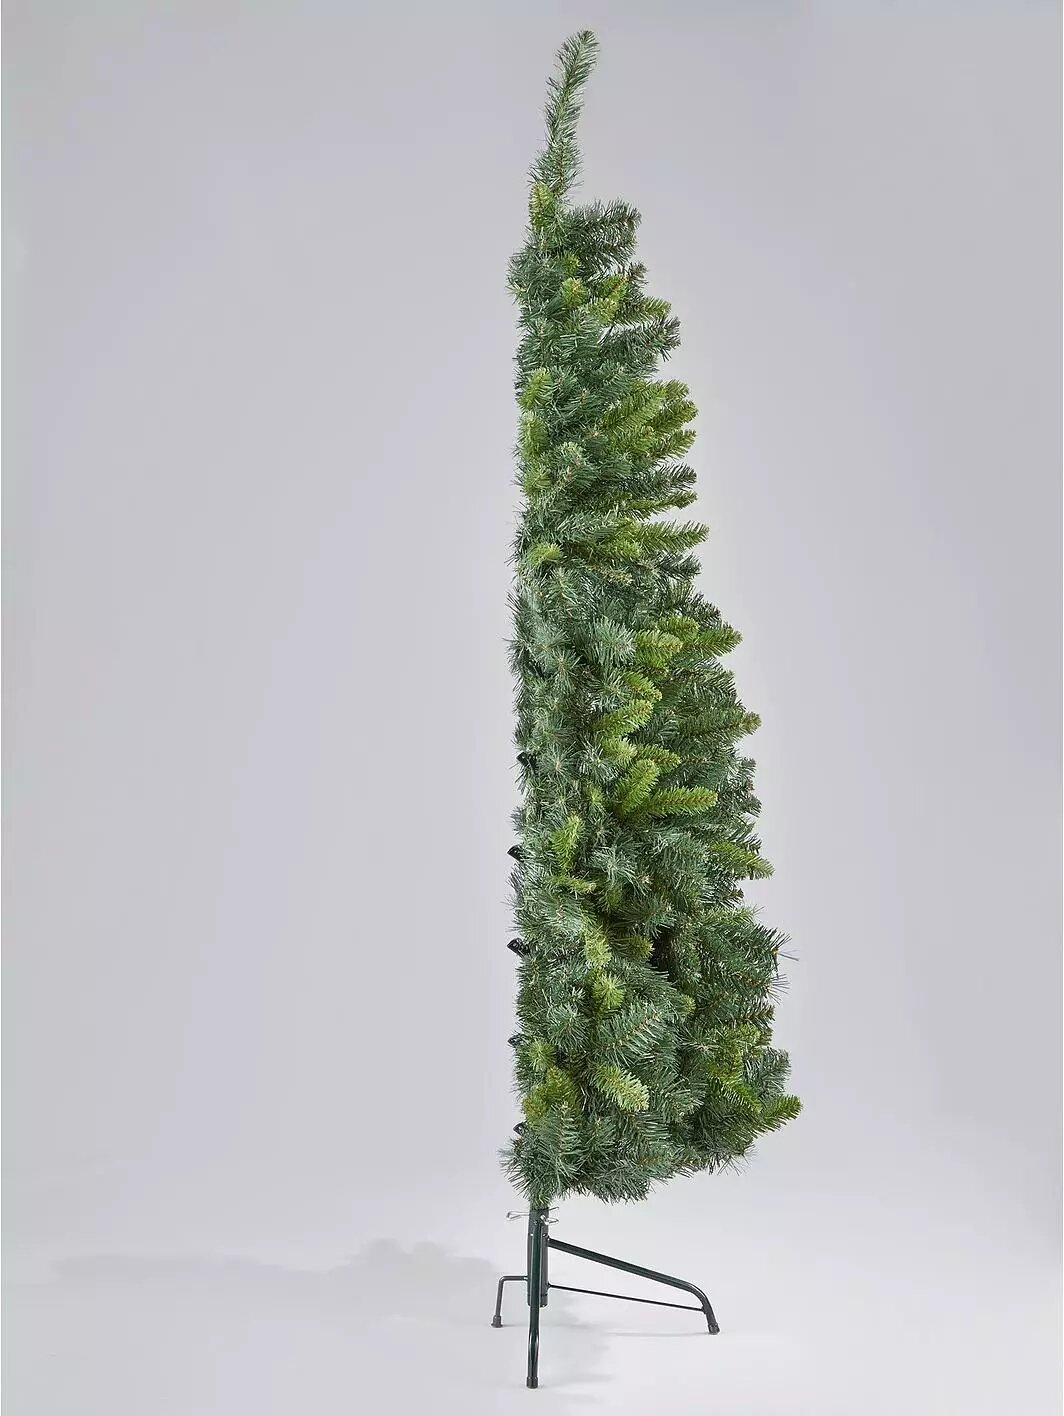 You can now buy half Christmas trees so you don't have to decorate the full thing, The Manc